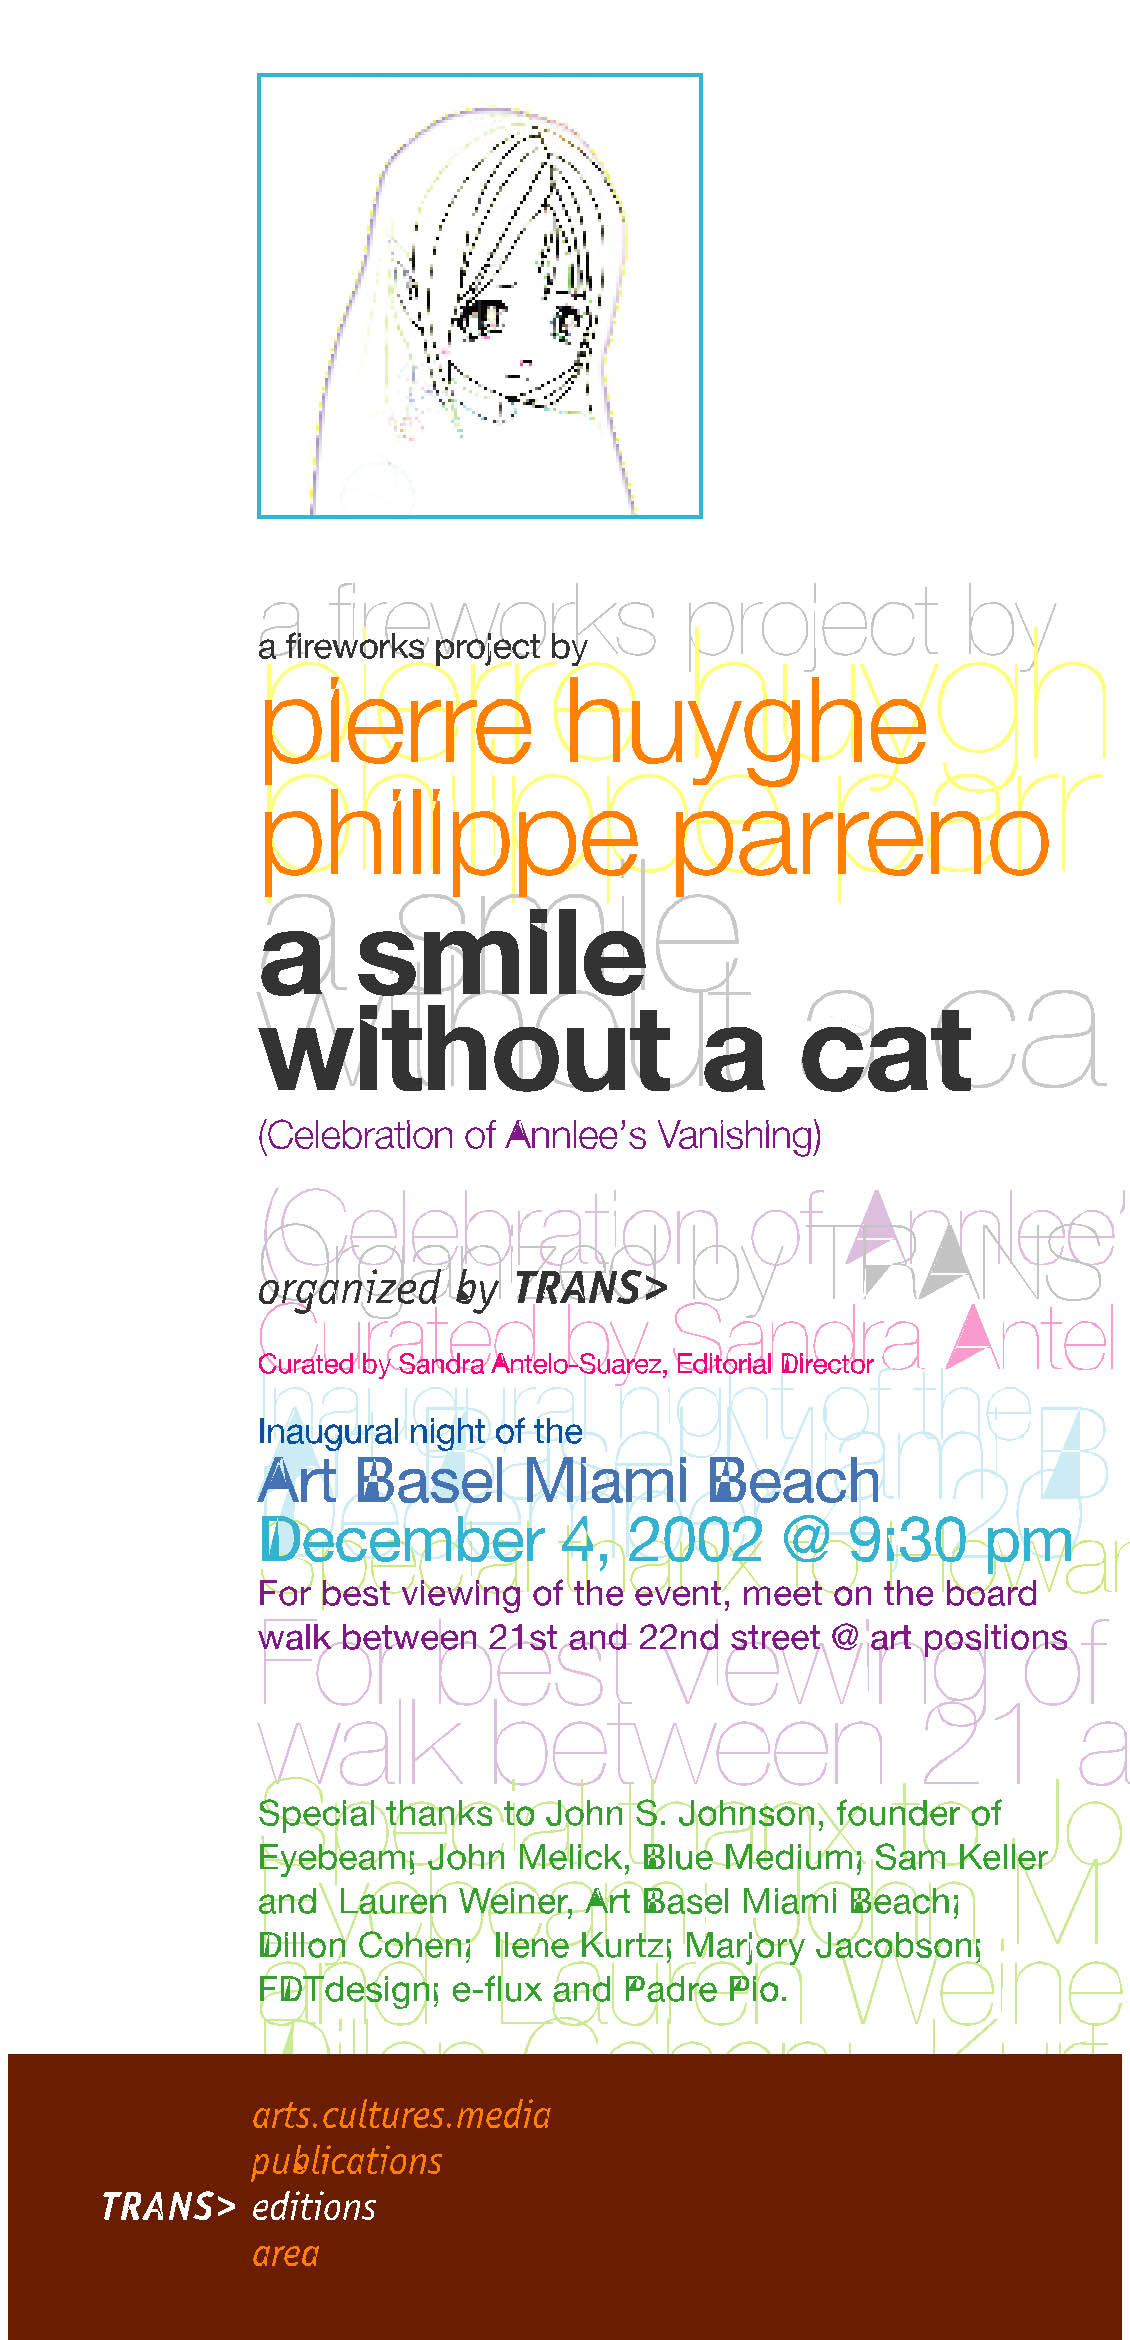 Smile Without A Cat: A Celebration of Annlee's Vanishing.                           A fireworks project by Pierre Huyghe and Philippe Parreno